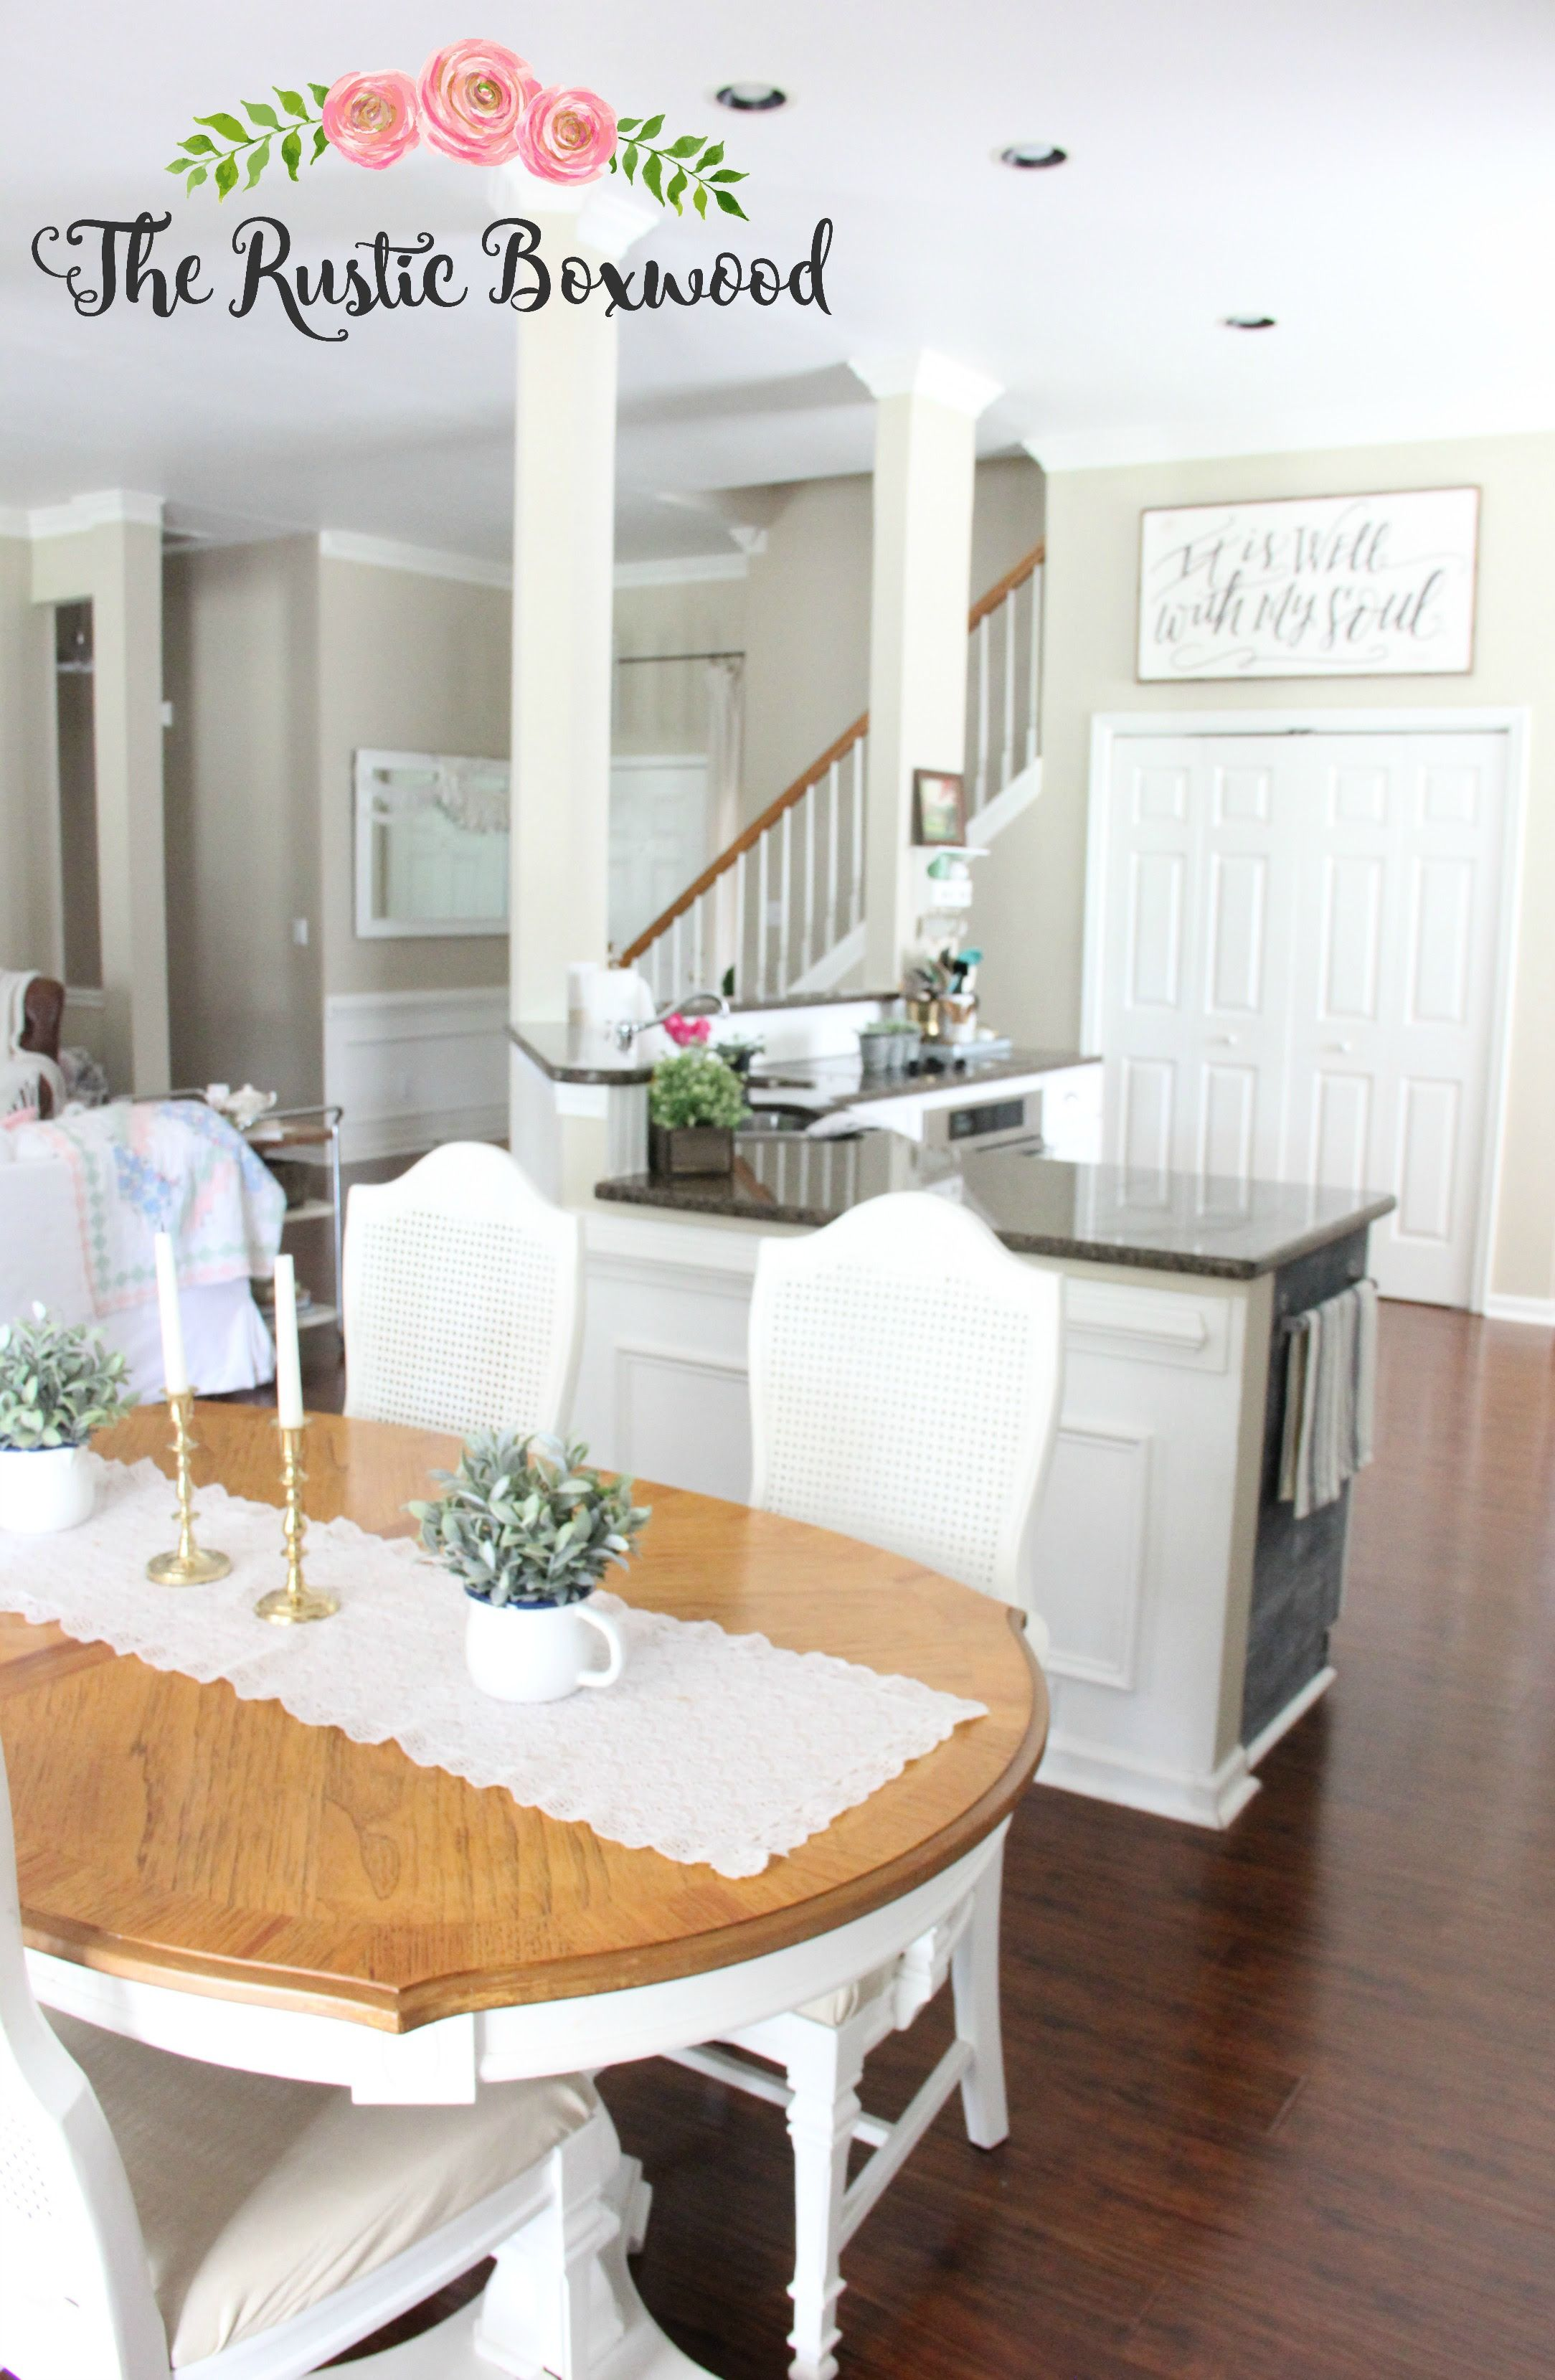 Open Concept In A Small Home Dining Room Kitchen Entry And Living Room Combined Into One Kitchen Decor Interior Decorating Living Room Living Dining Room